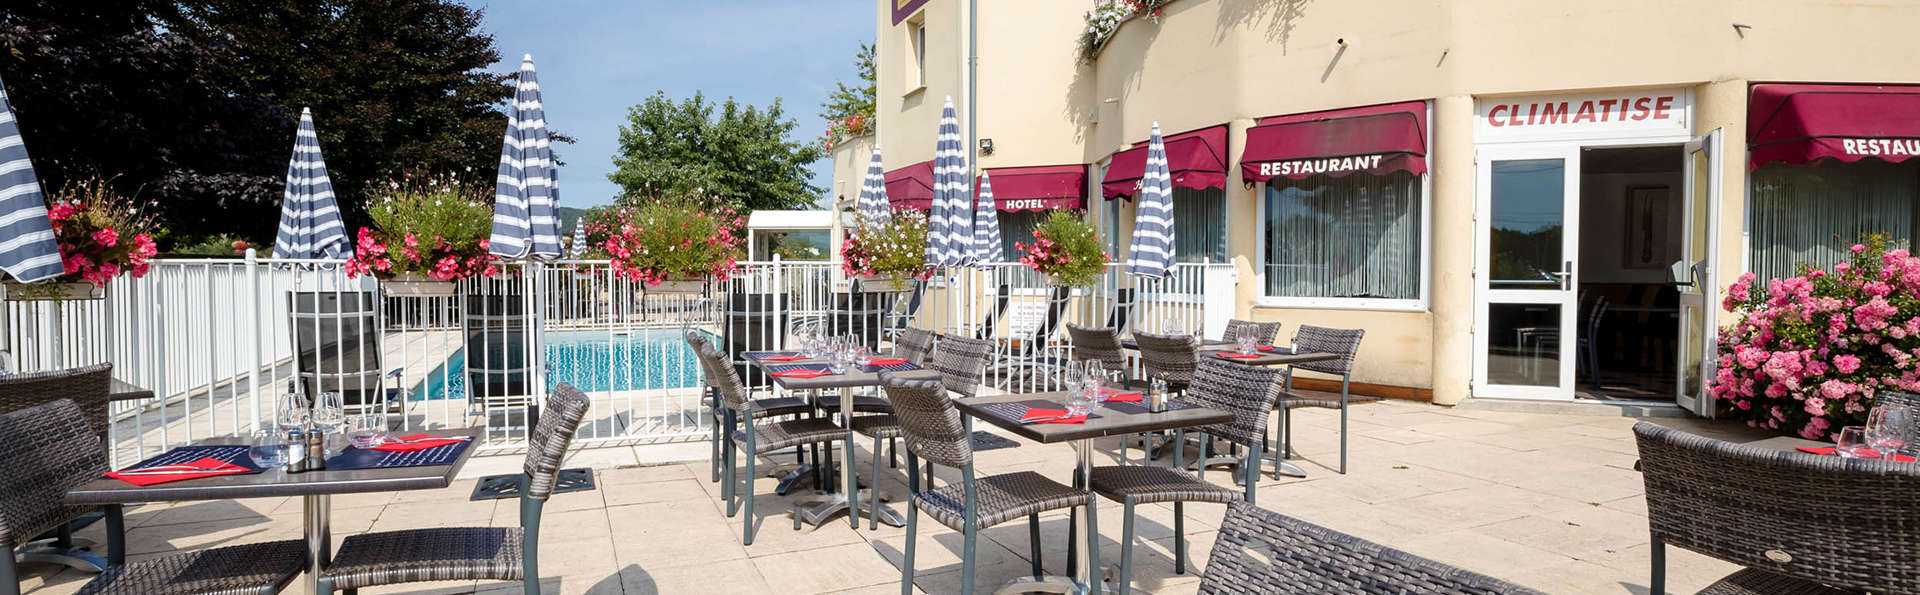 Balladins Superior Dijon Sud - EDIT_NEW_restauranterrace.jpg